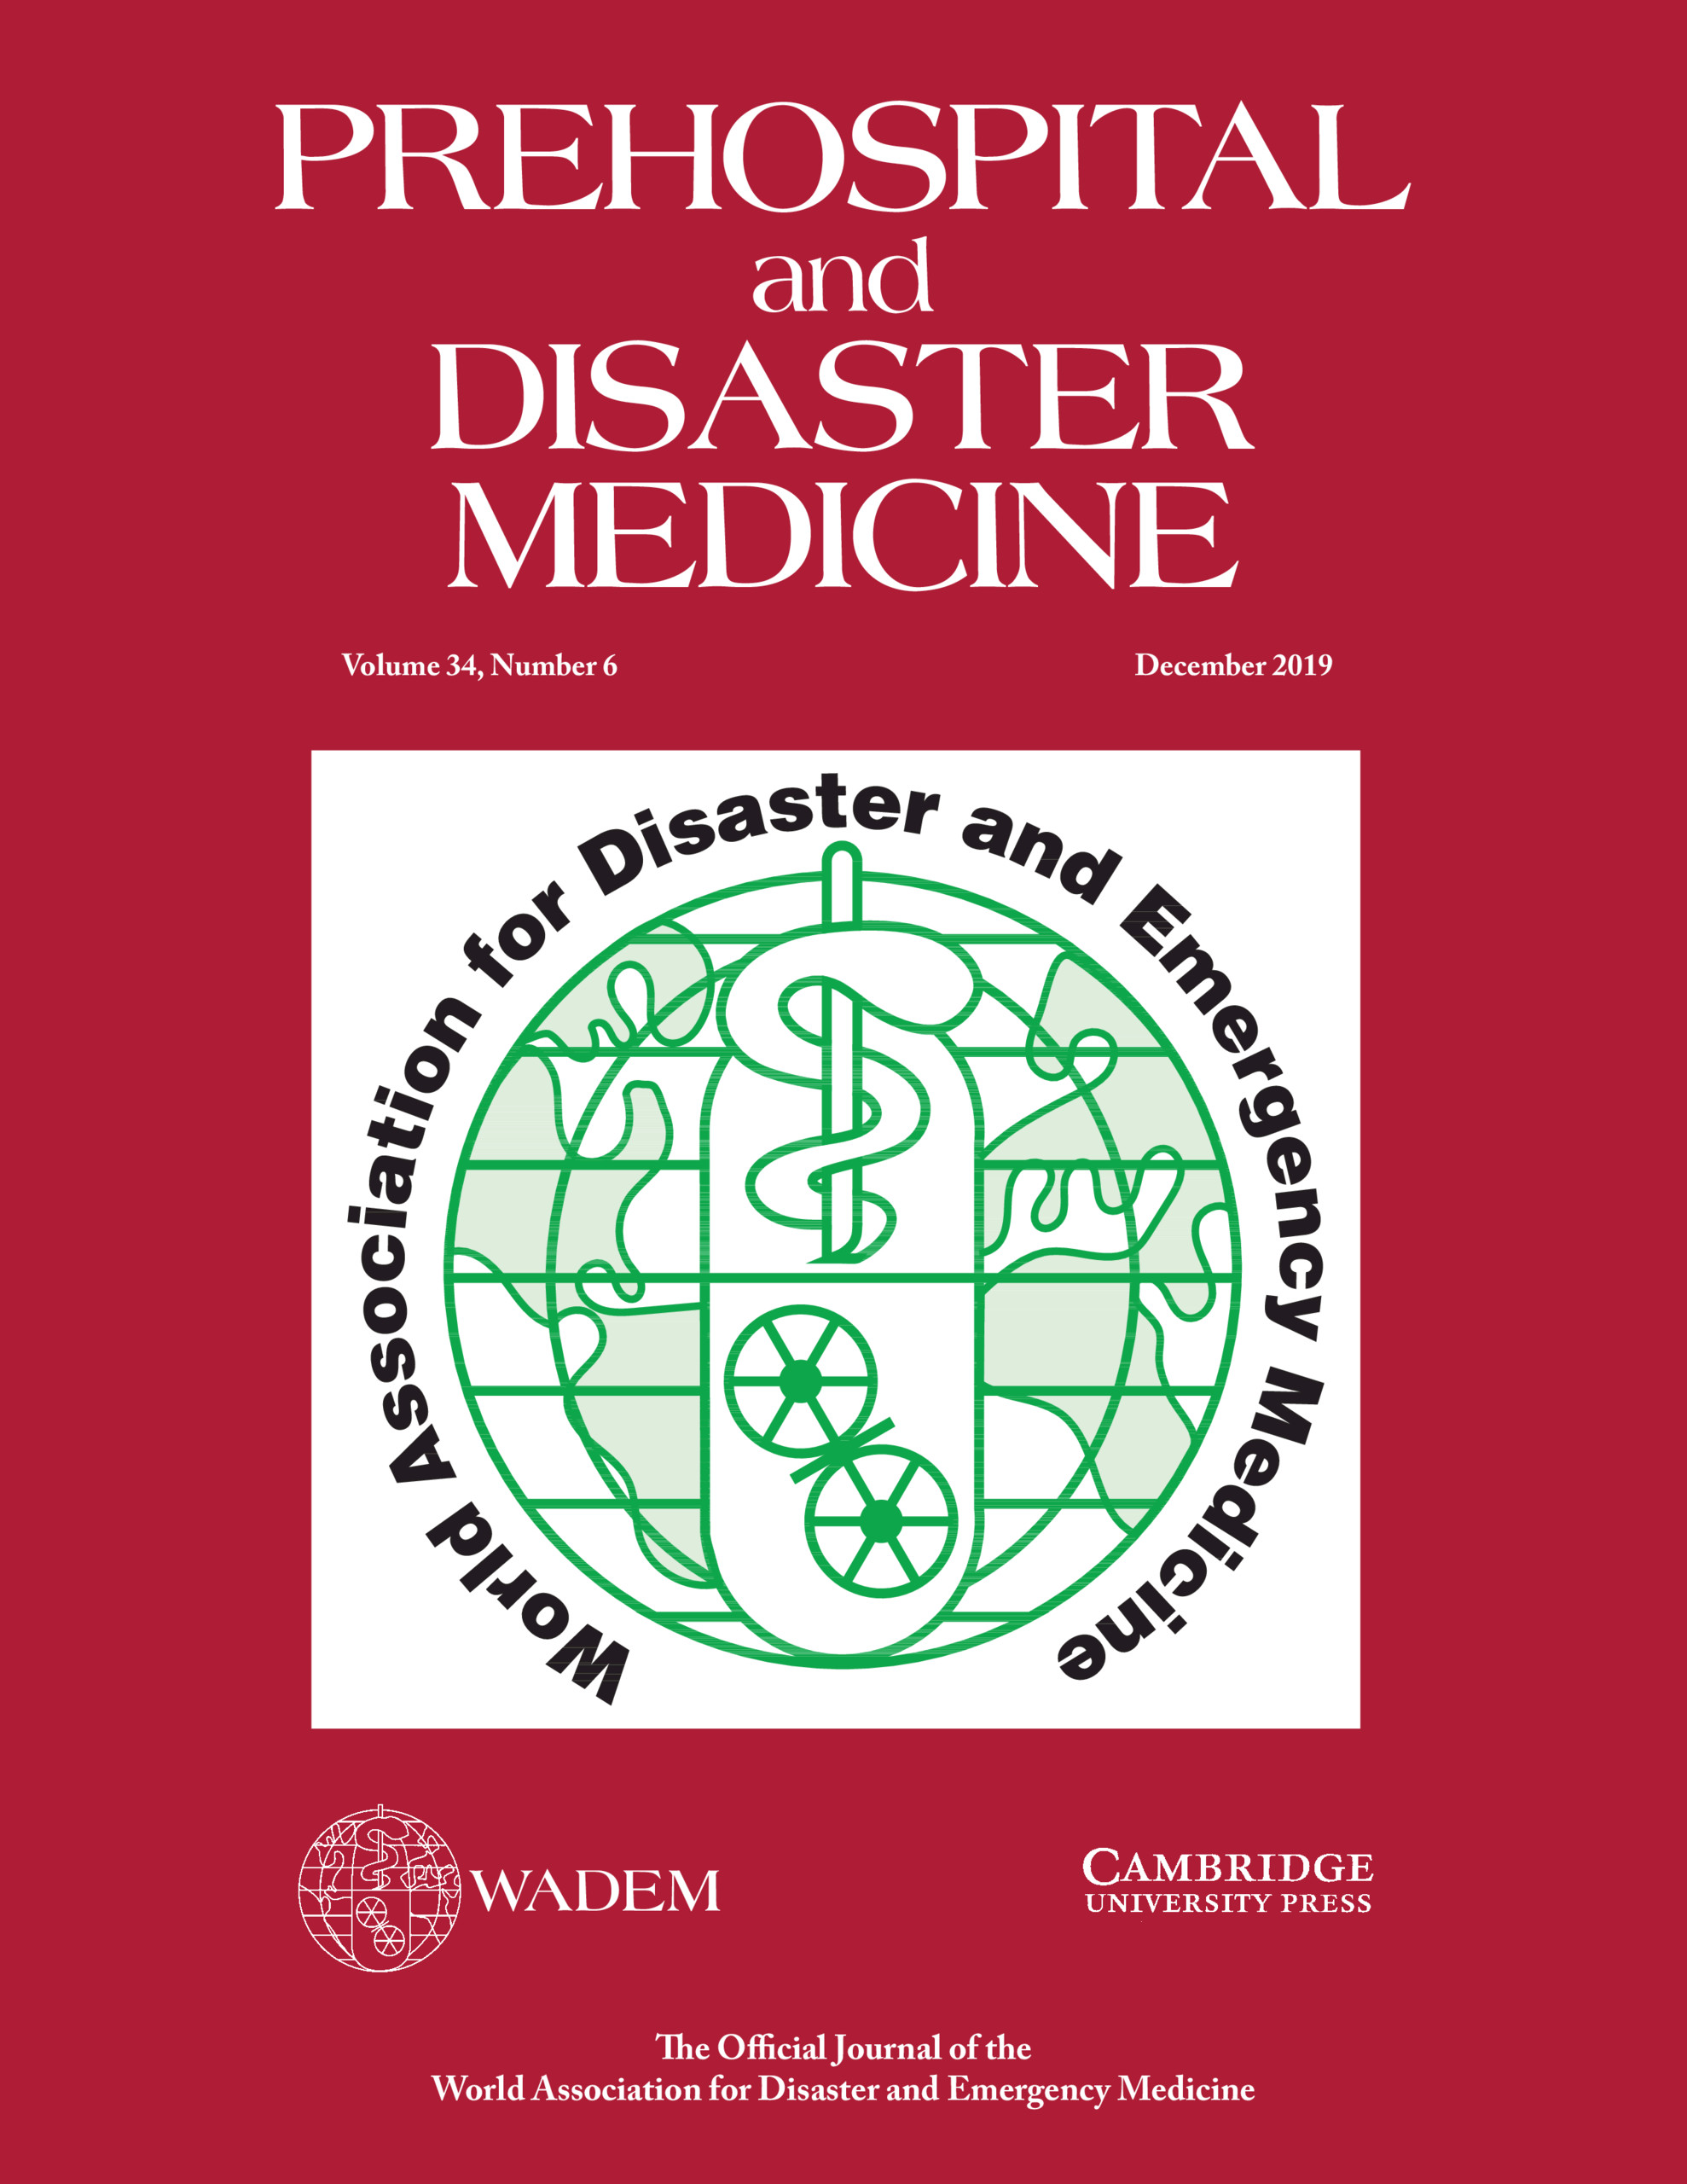 Prehospital and Disaster Medicine | Latest issue | Cambridge